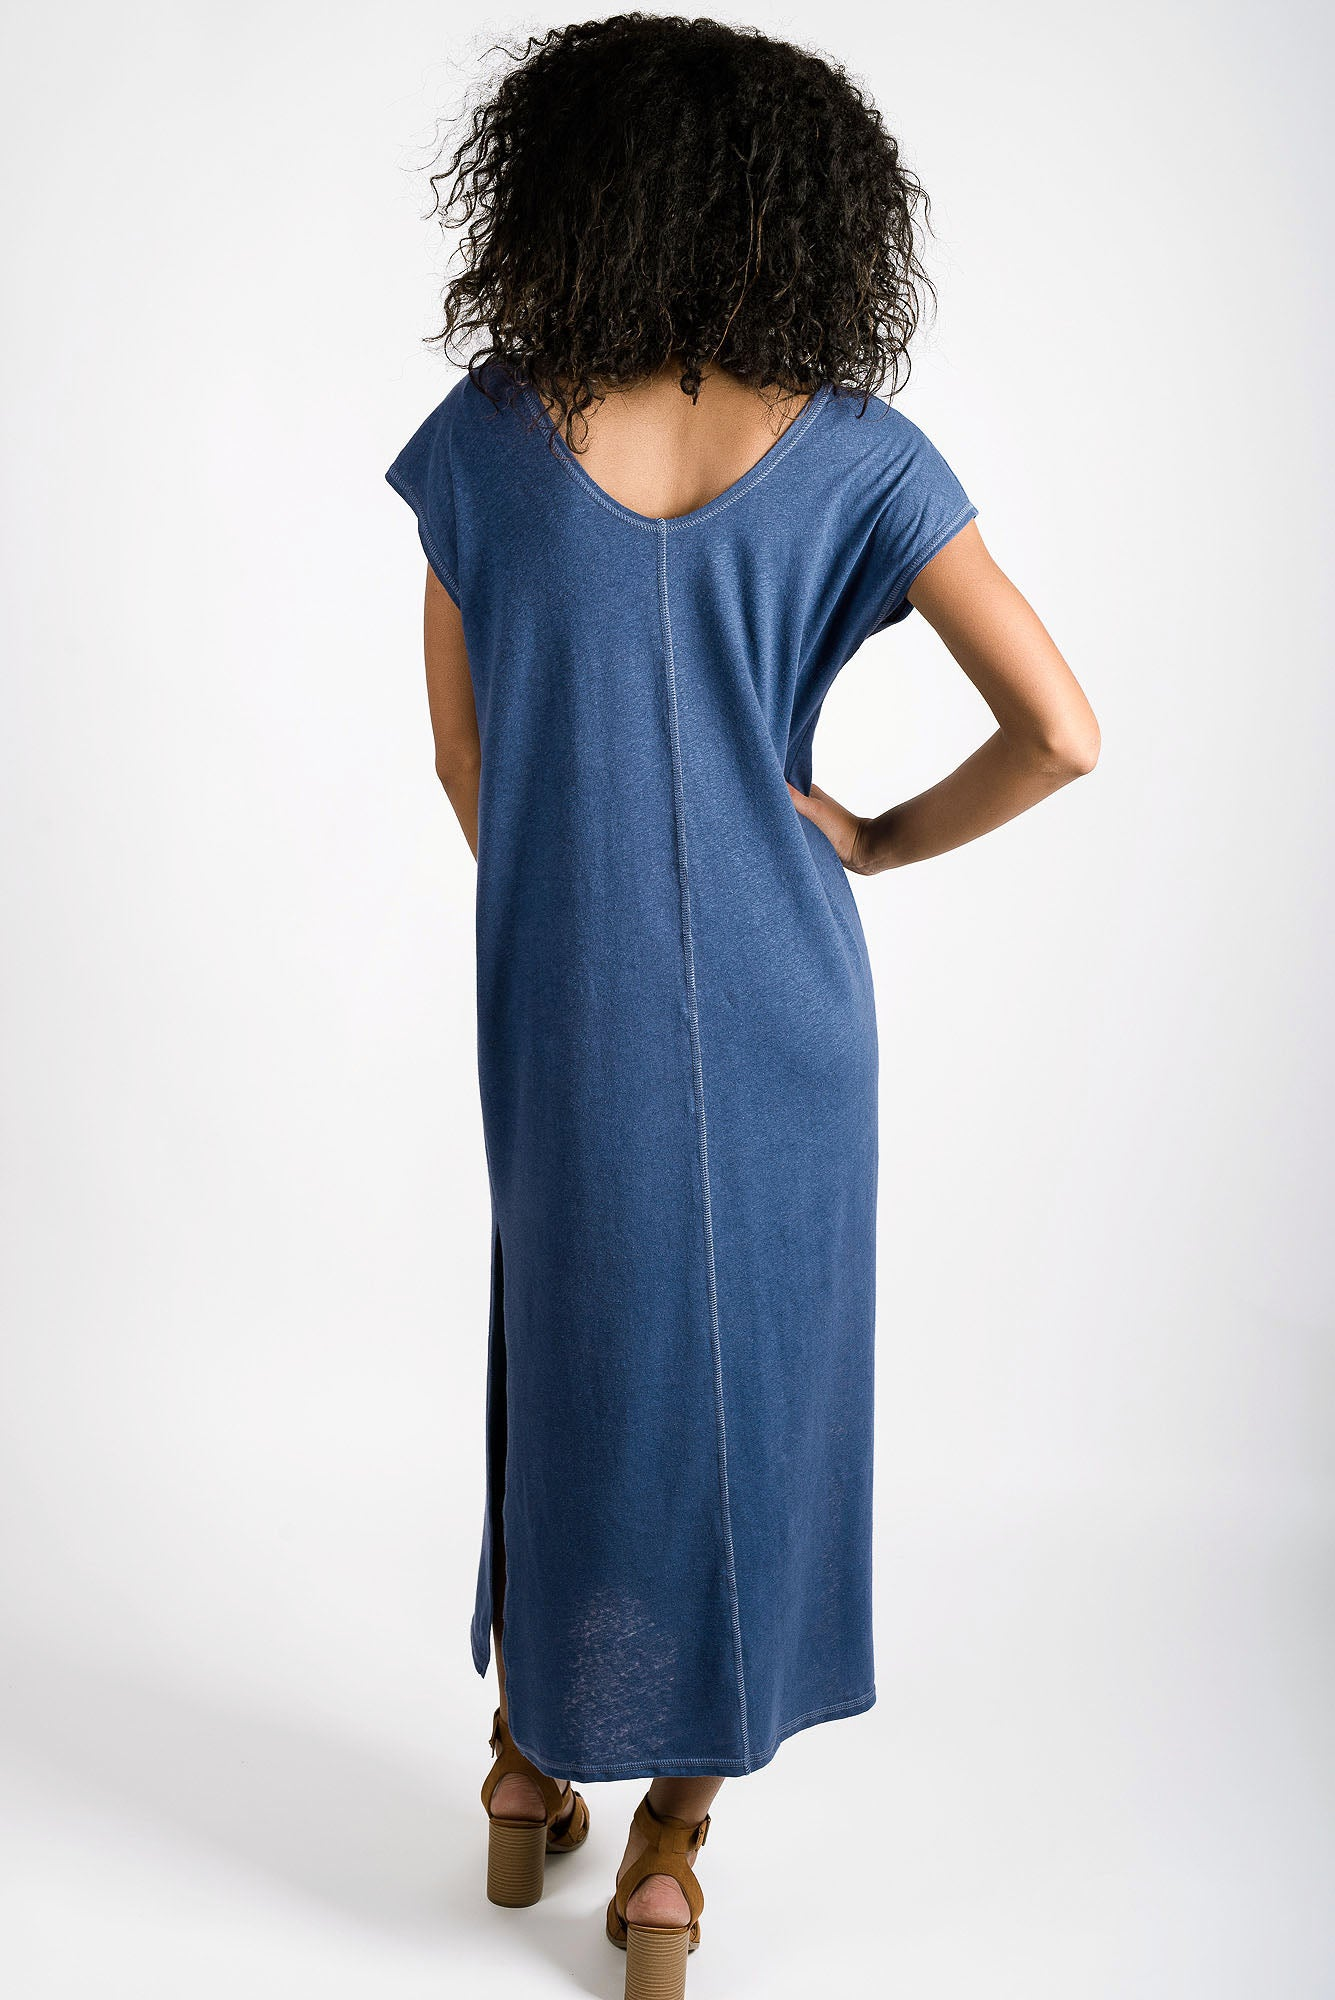 Della Reversible Dress | Indigo Blue